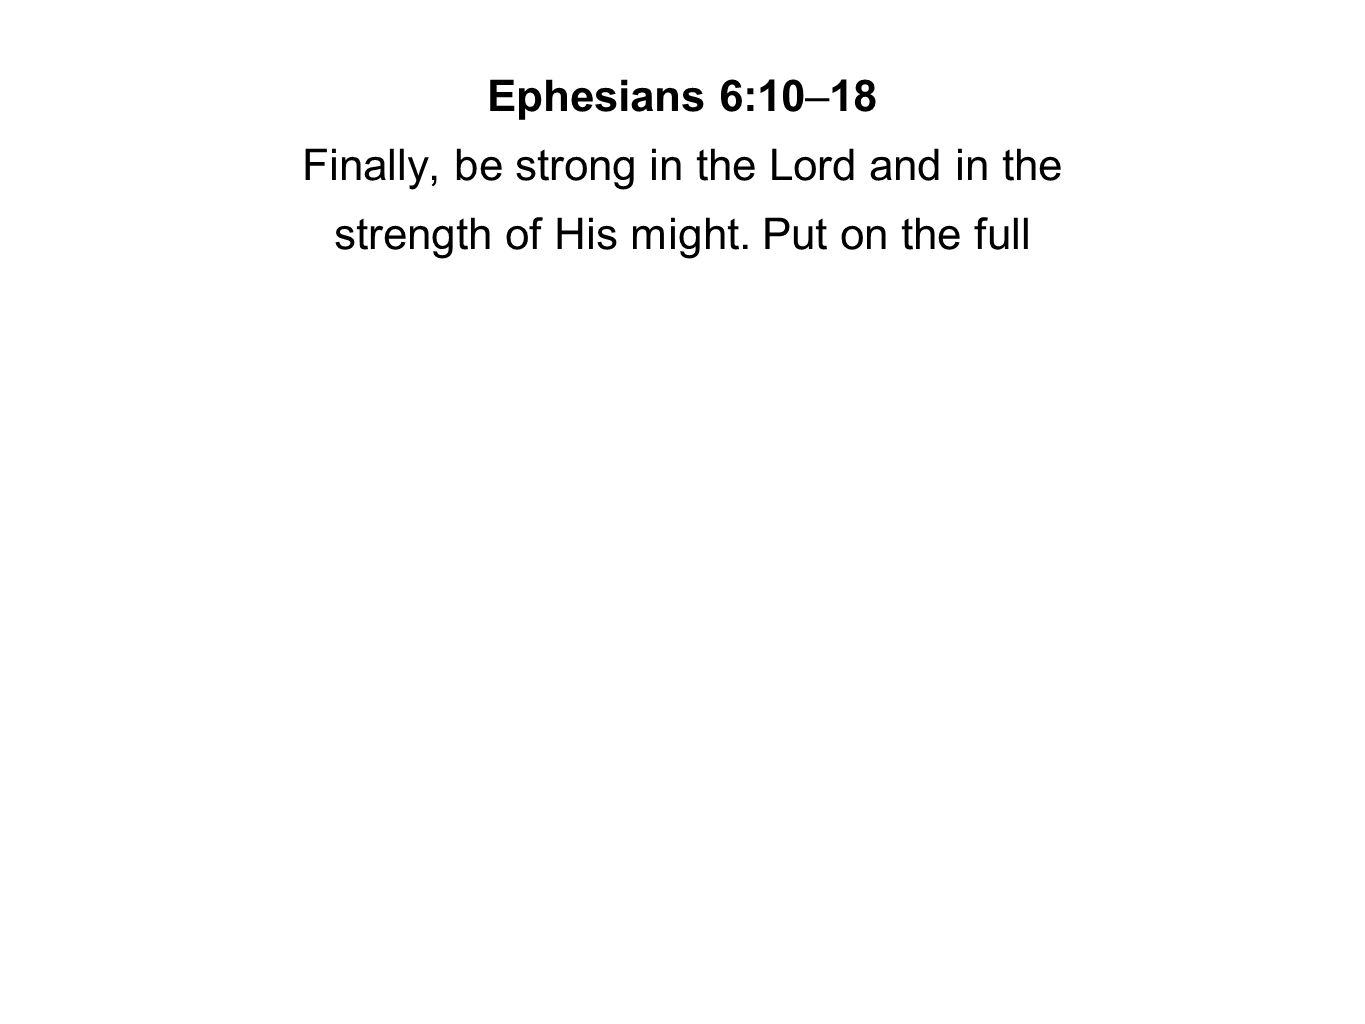 Ephesians 6:10–18 Finally, be strong in the Lord and in the strength of His might. Put on the full